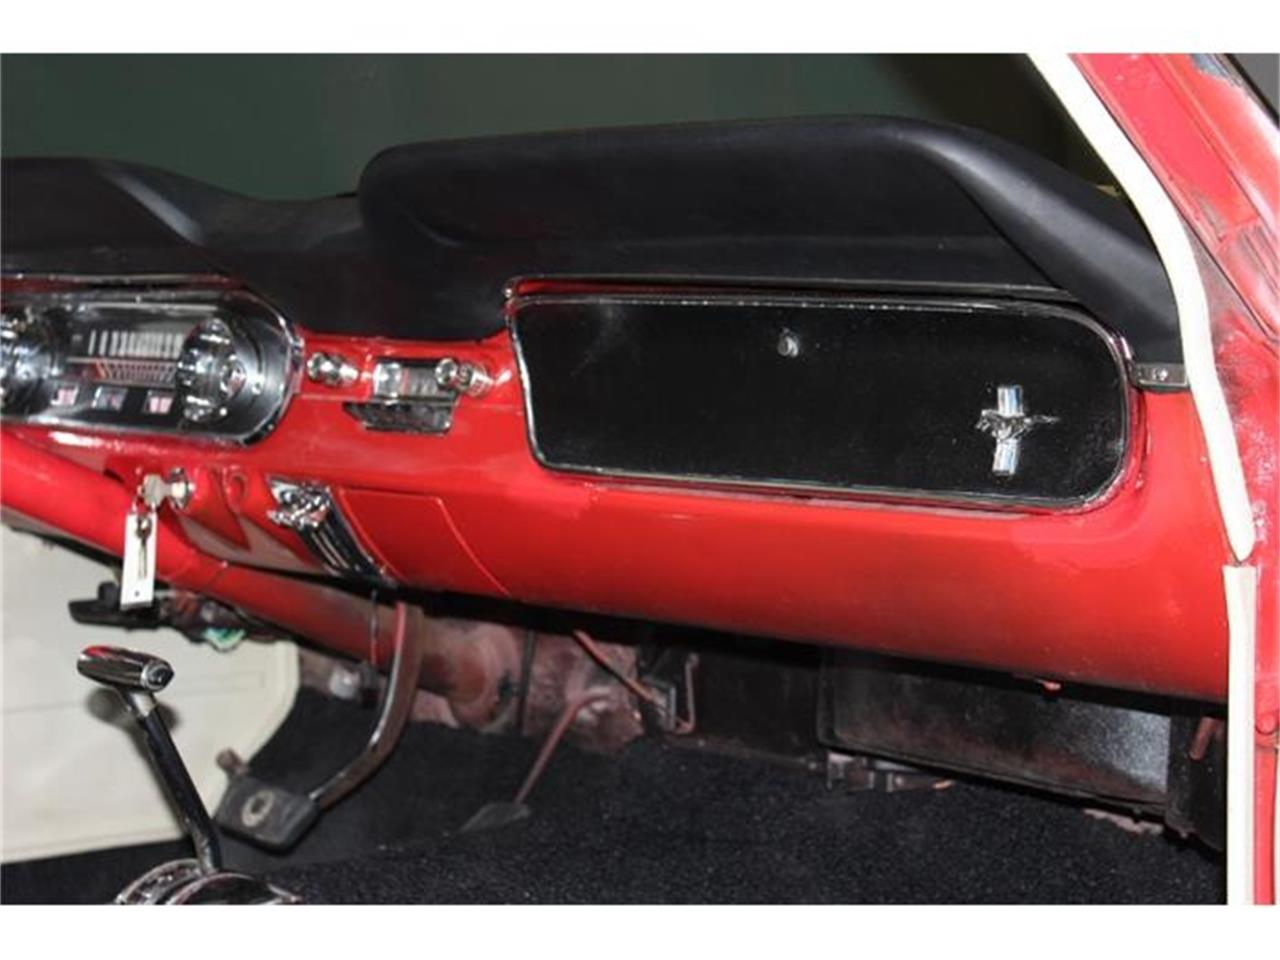 Large Picture of '65 Ford Mustang located in Lillington North Carolina - $19,500.00 - EK0D